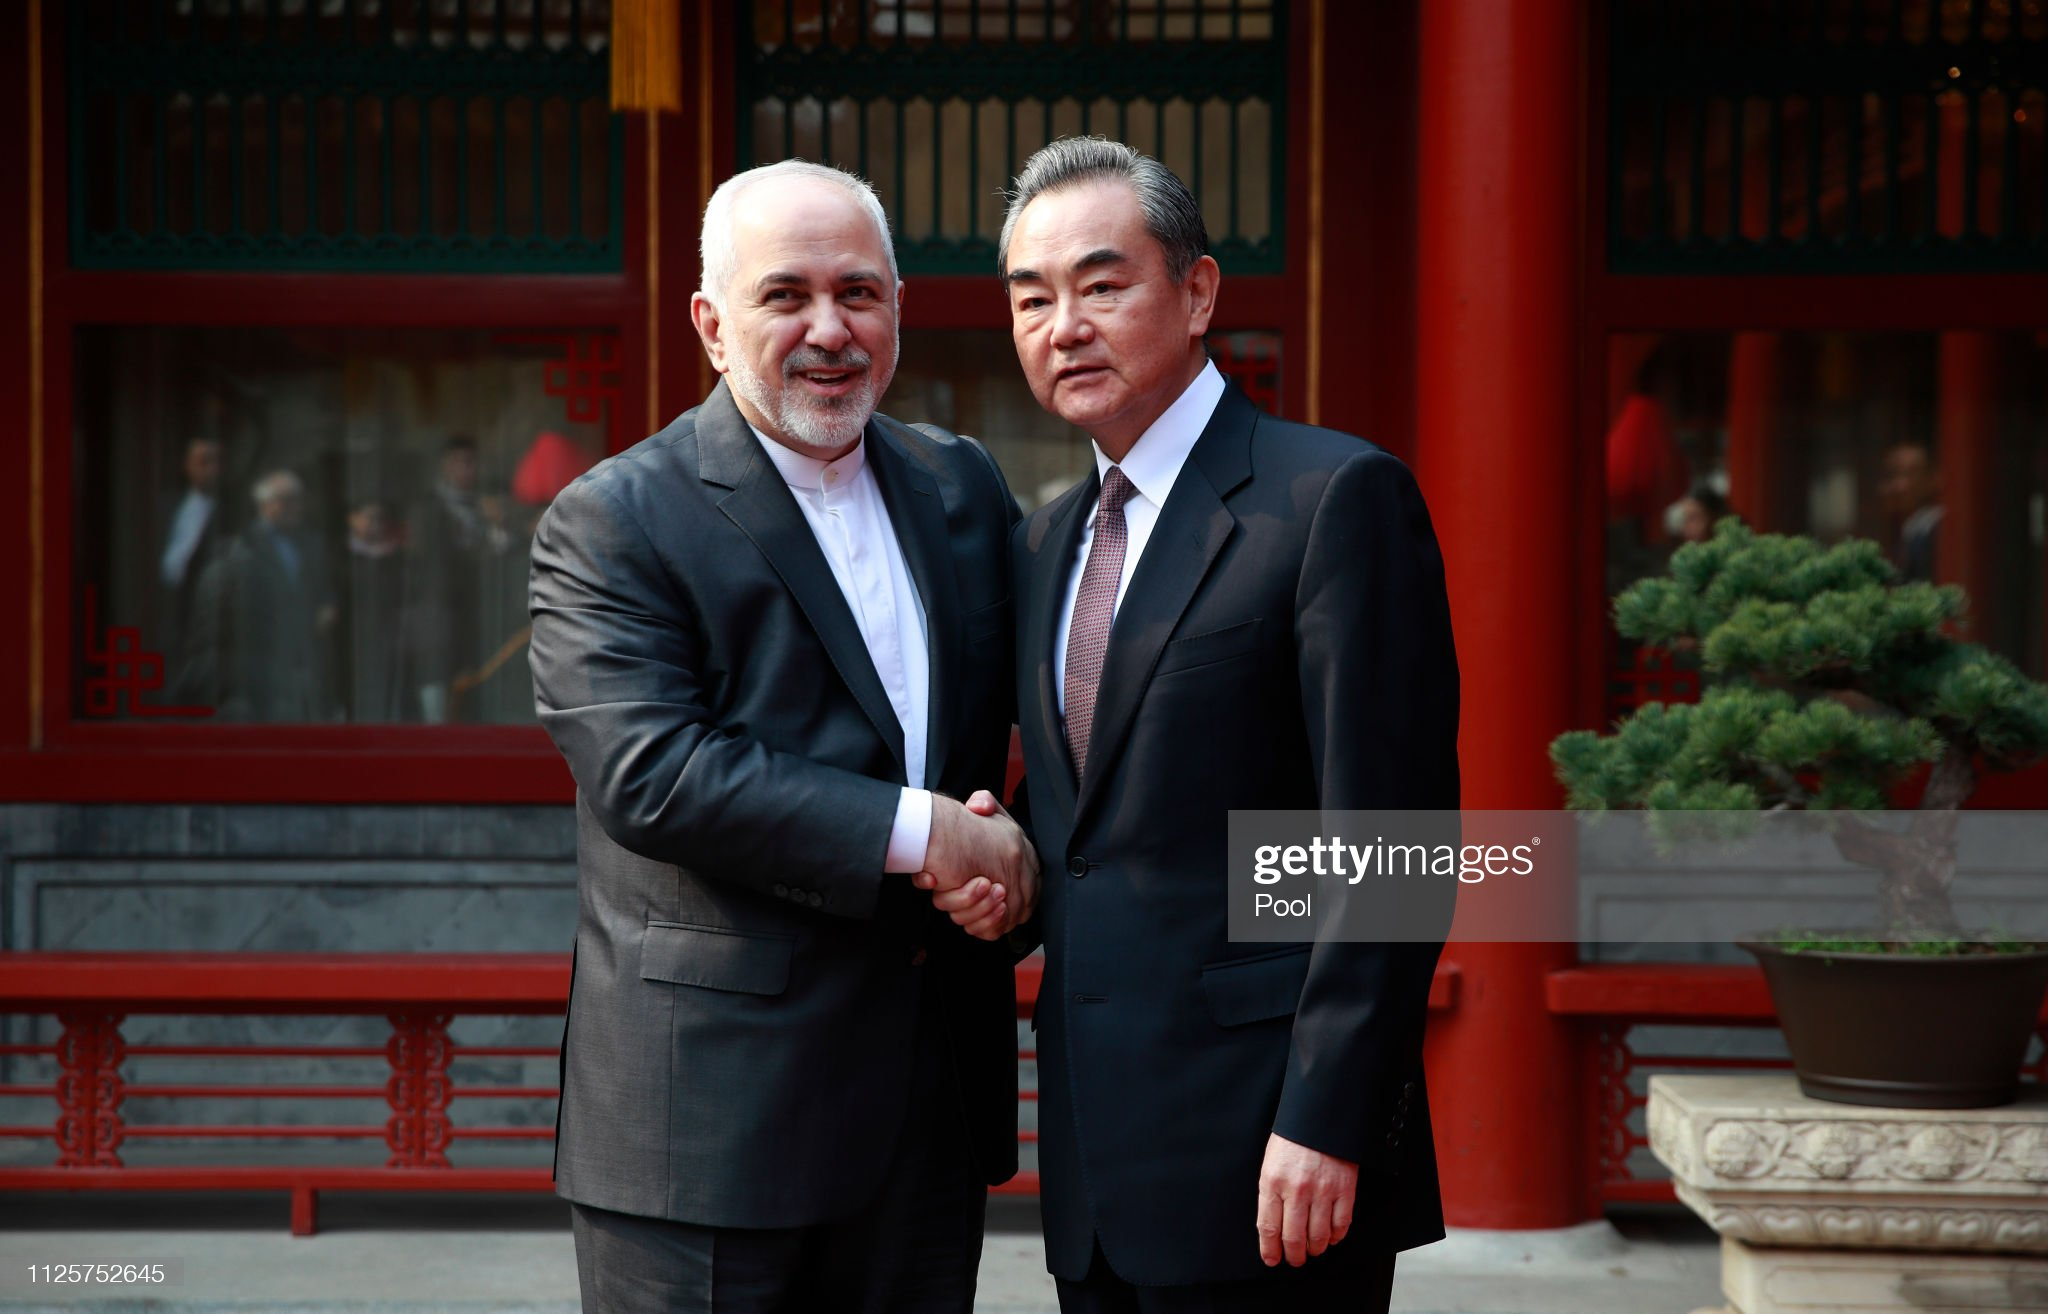 Iranian Foreign Minister Mohammad Javad Zarif Meets Chinese Counterpart Wang Yi : News Photo